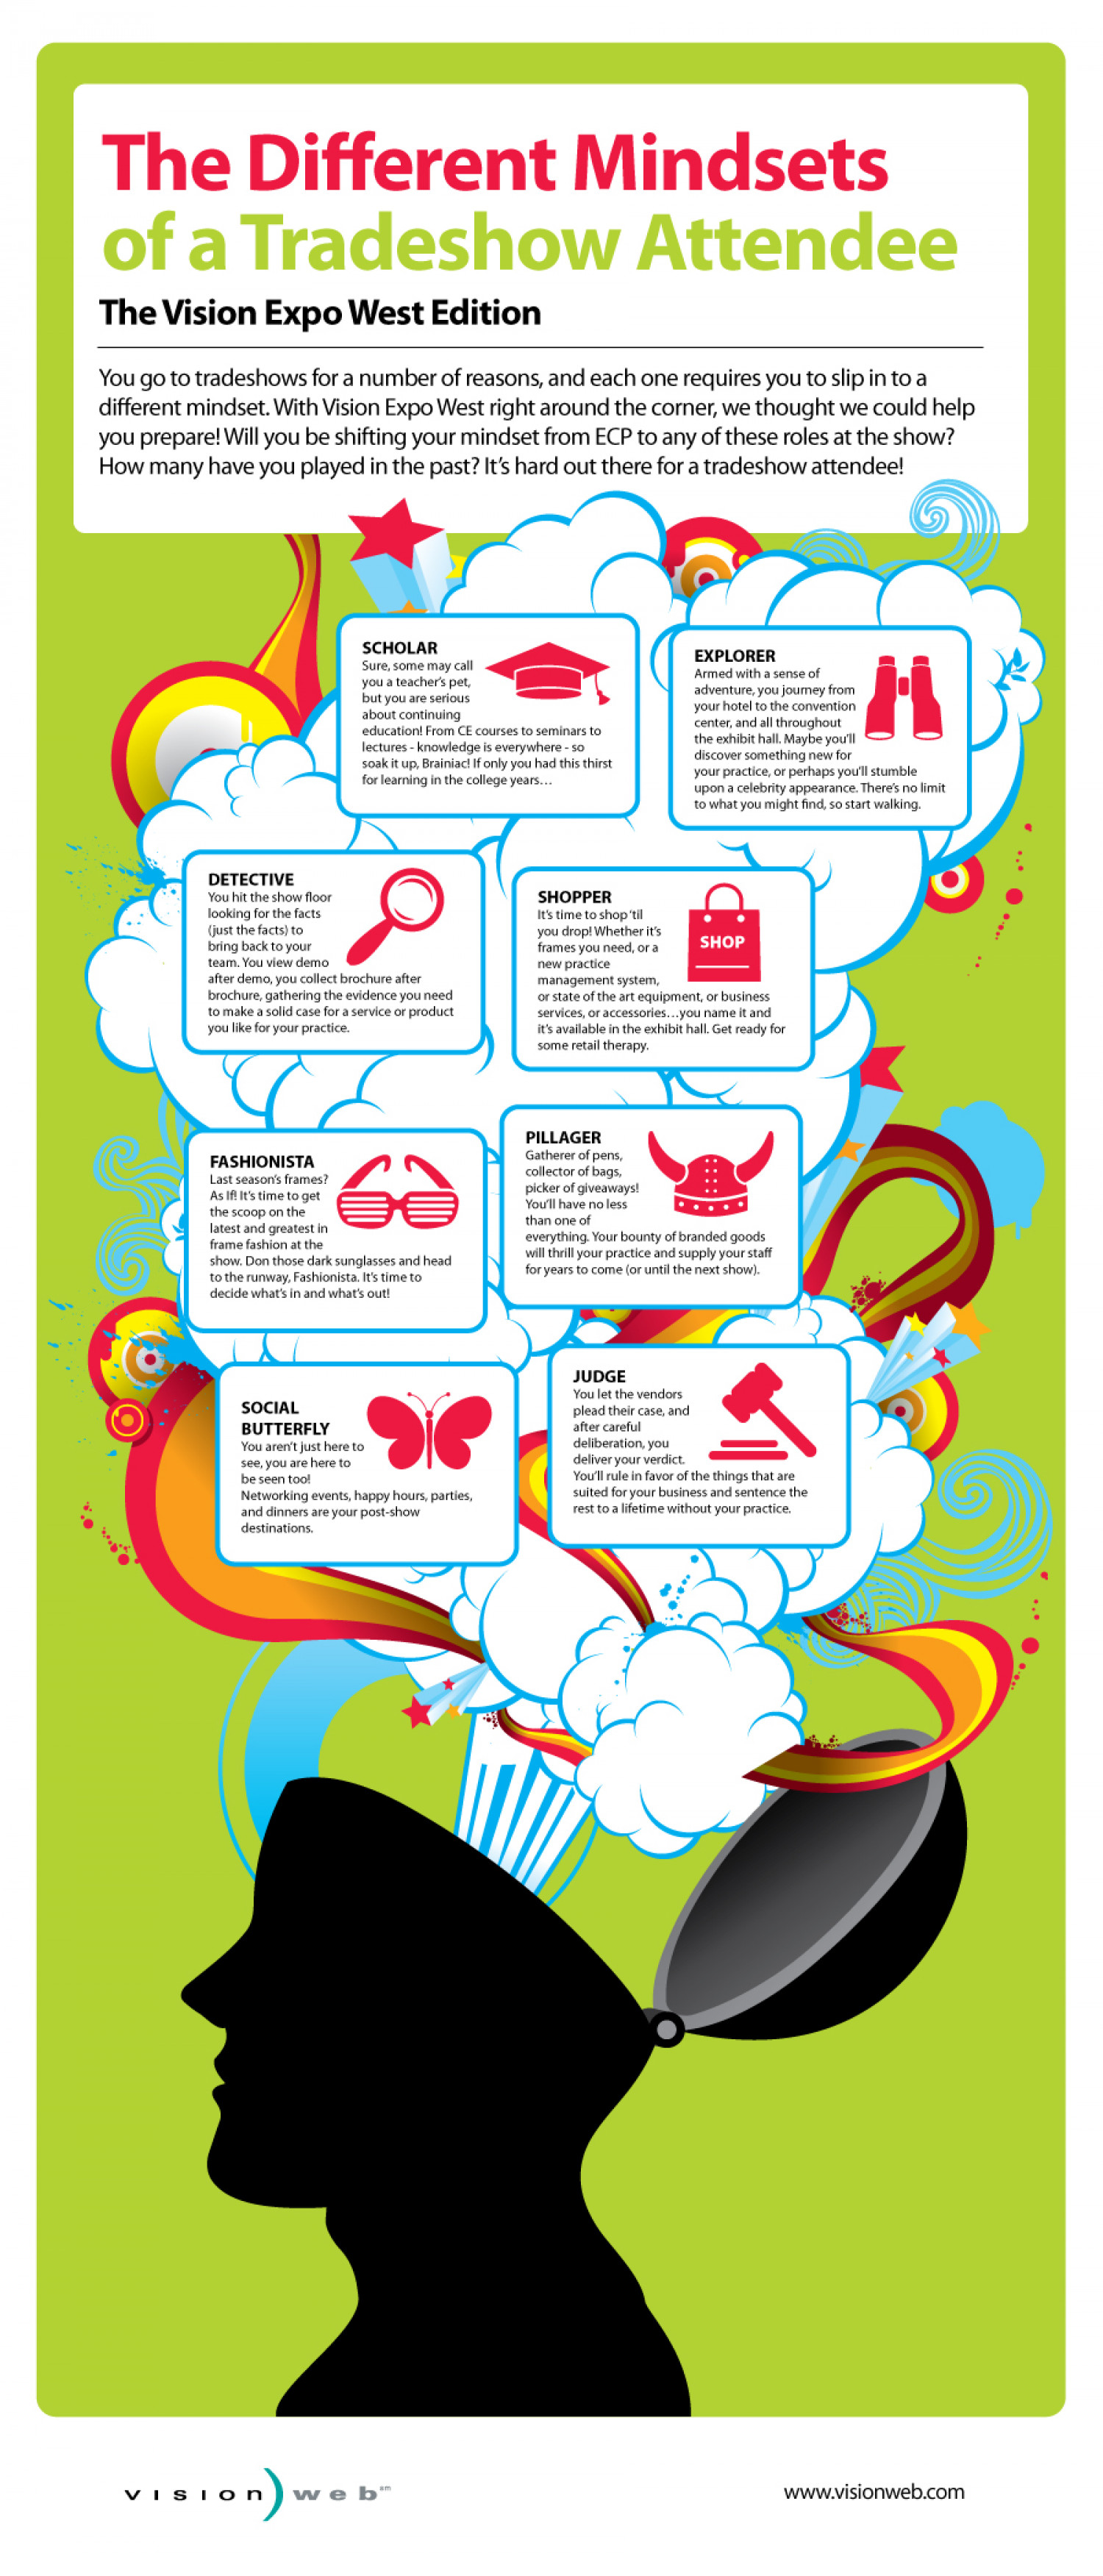 The Different Mindsets of a Tradeshow Attendee Infographic